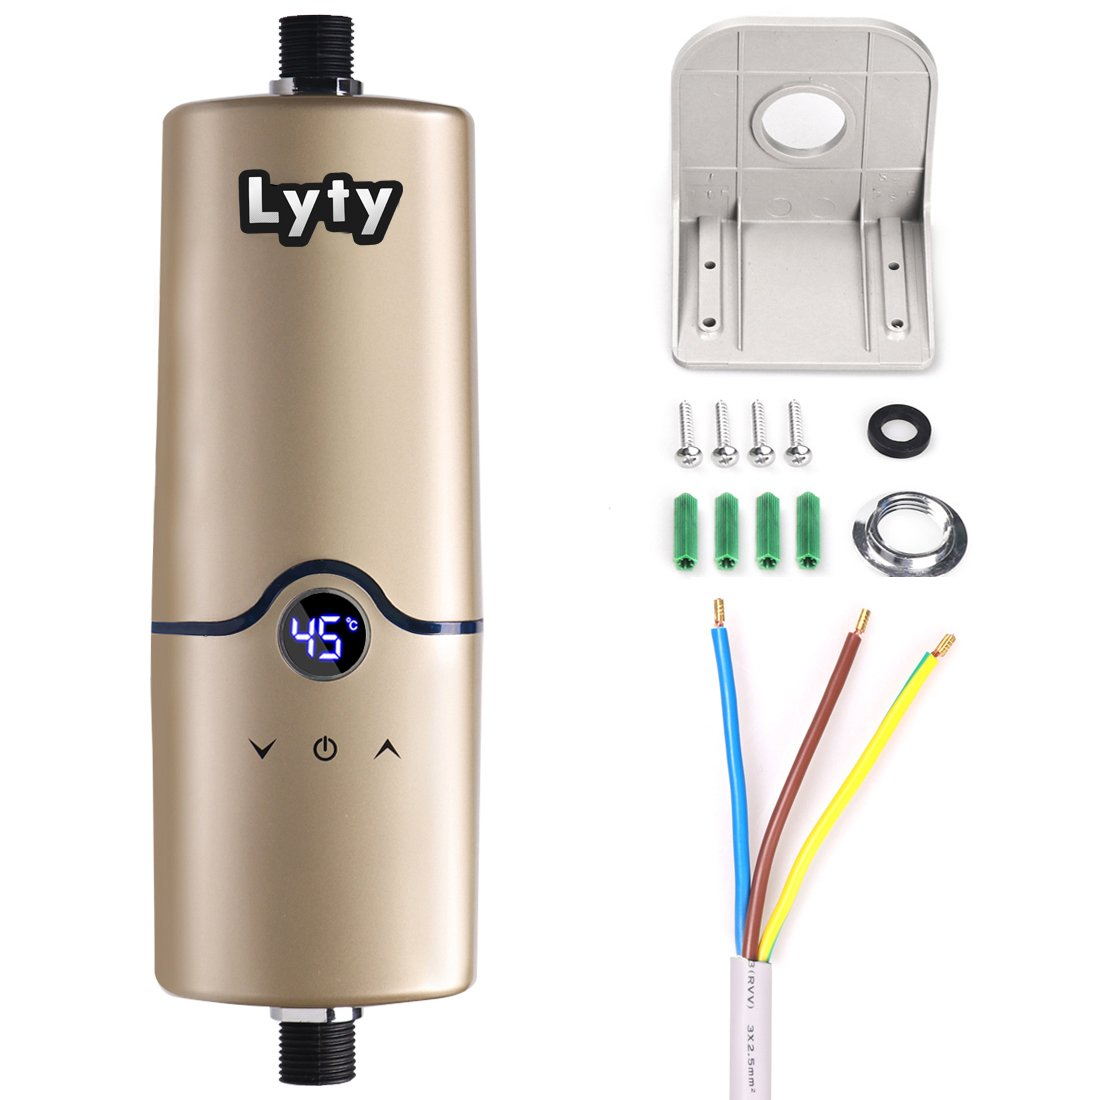 Instant Electric Tankless Water Heater 240V 4 Power Levels (3.5KW 4.5KW 5KW 5.5KW) Mini Hot Water Heater for Kitchen Bathroom